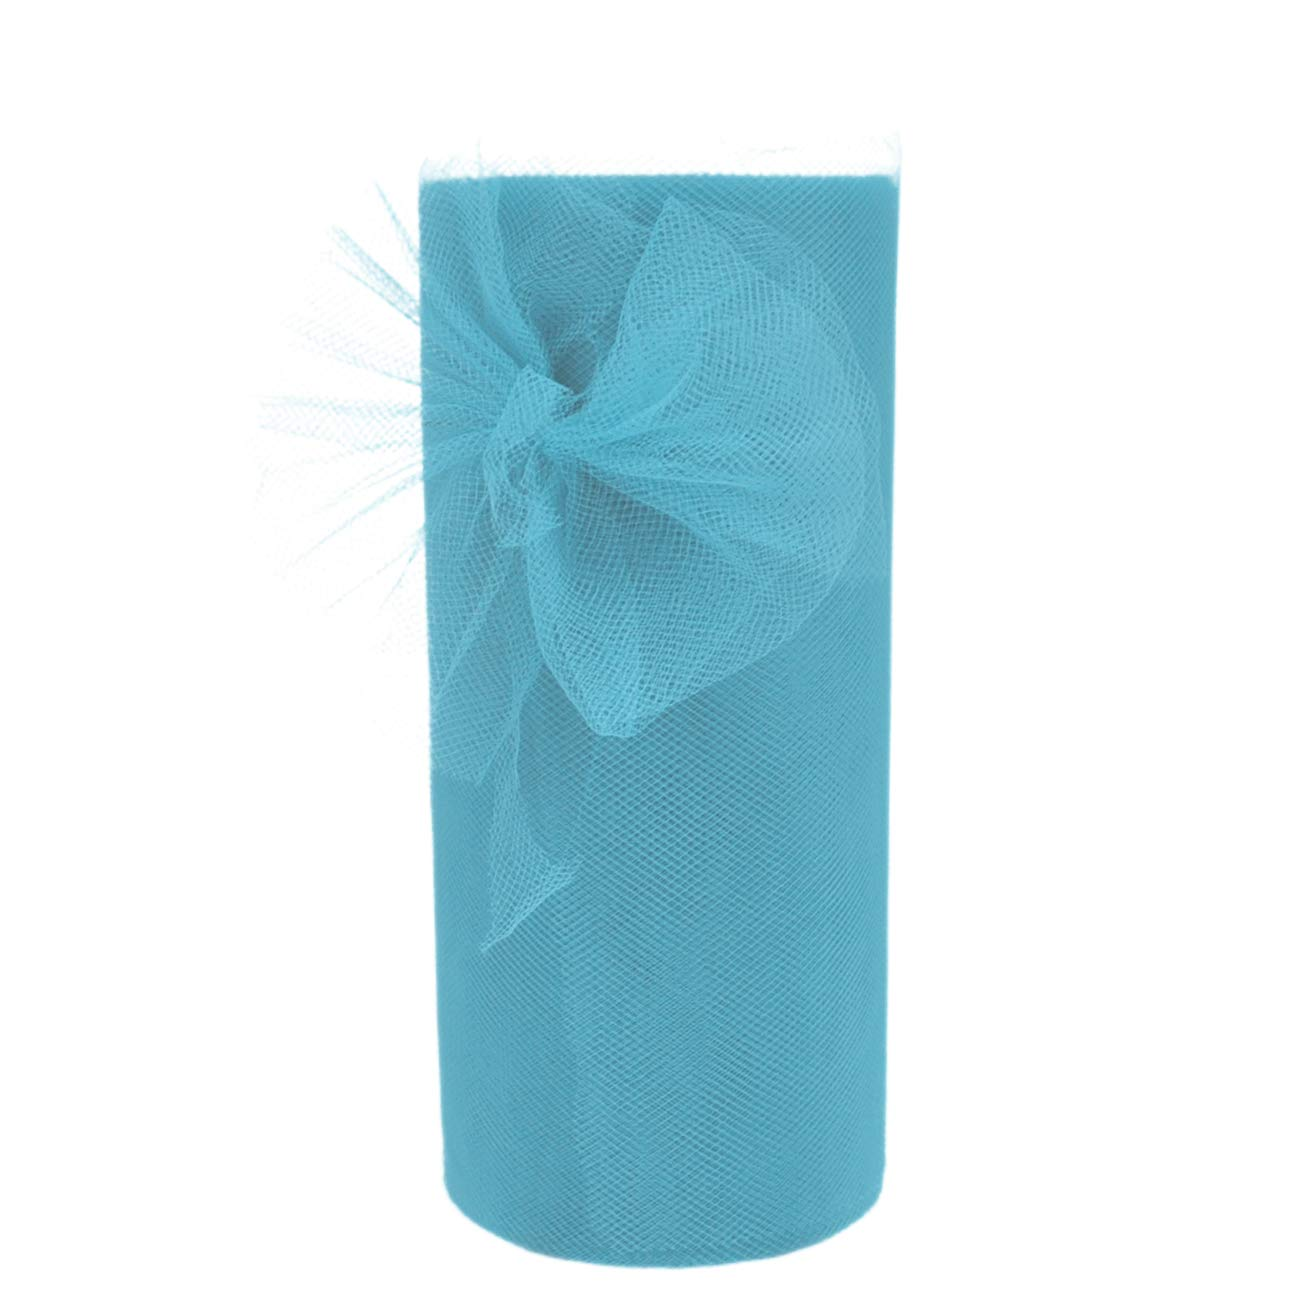 Tulle Rolls Light Blue Tulle Fabric Spool for Wedding Decorations Engagement Birthday Baby Shower Party Decoration High Chair Tutu Table Cake Skirt Making, Gift Wrapping Paper Tulle Ribbon(Light blue)